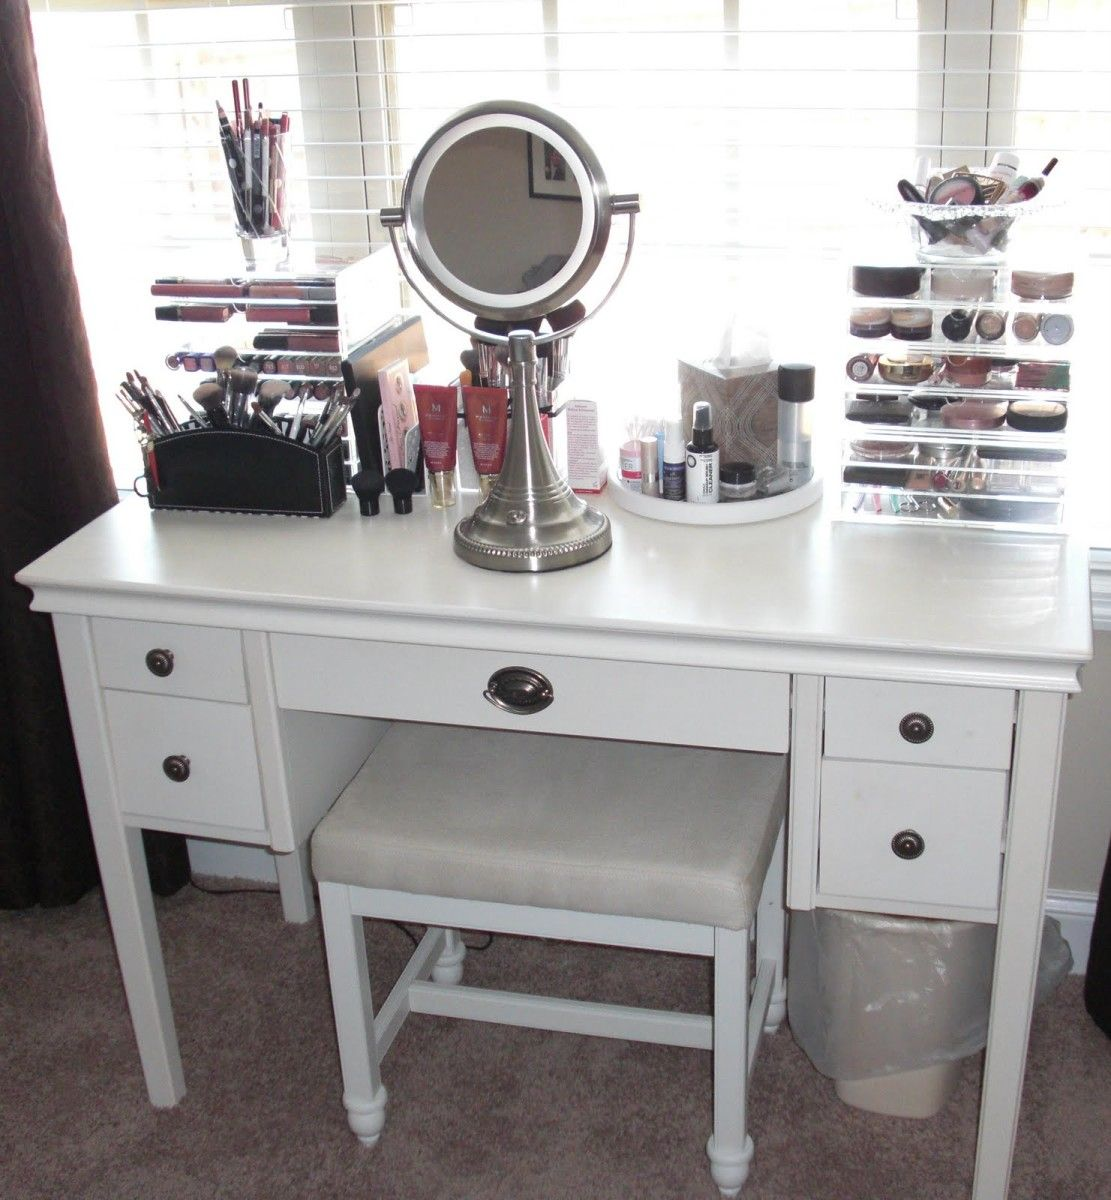 Furniture, Black Makeup Table With Lighted Mirror And